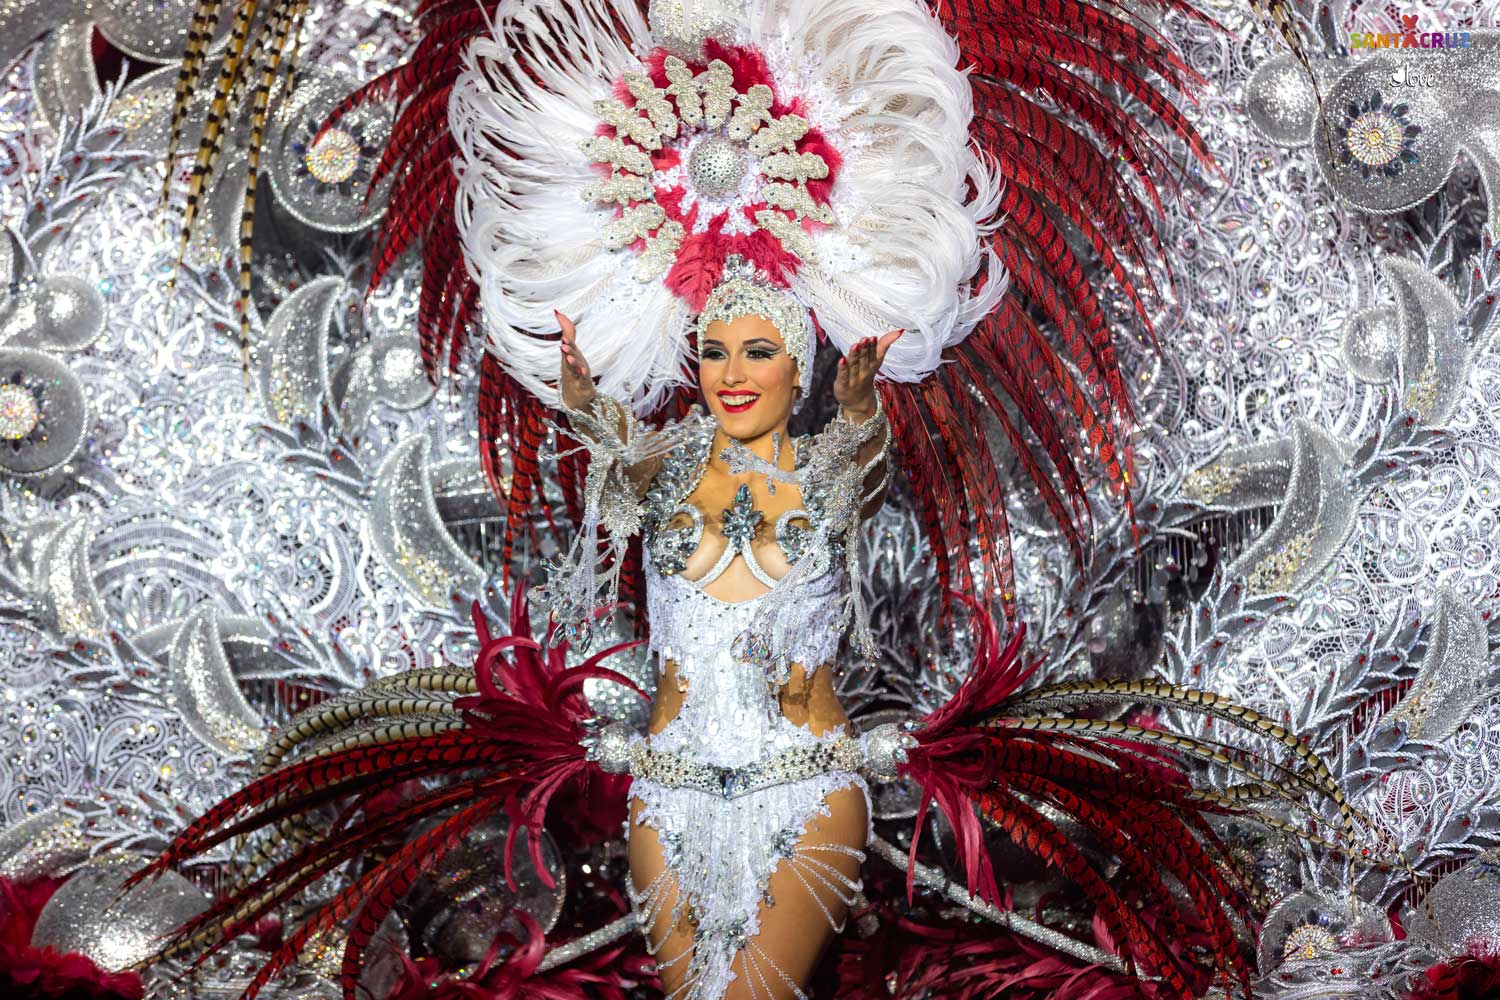 Tenerife Carnival: Election of the Carnival Queen